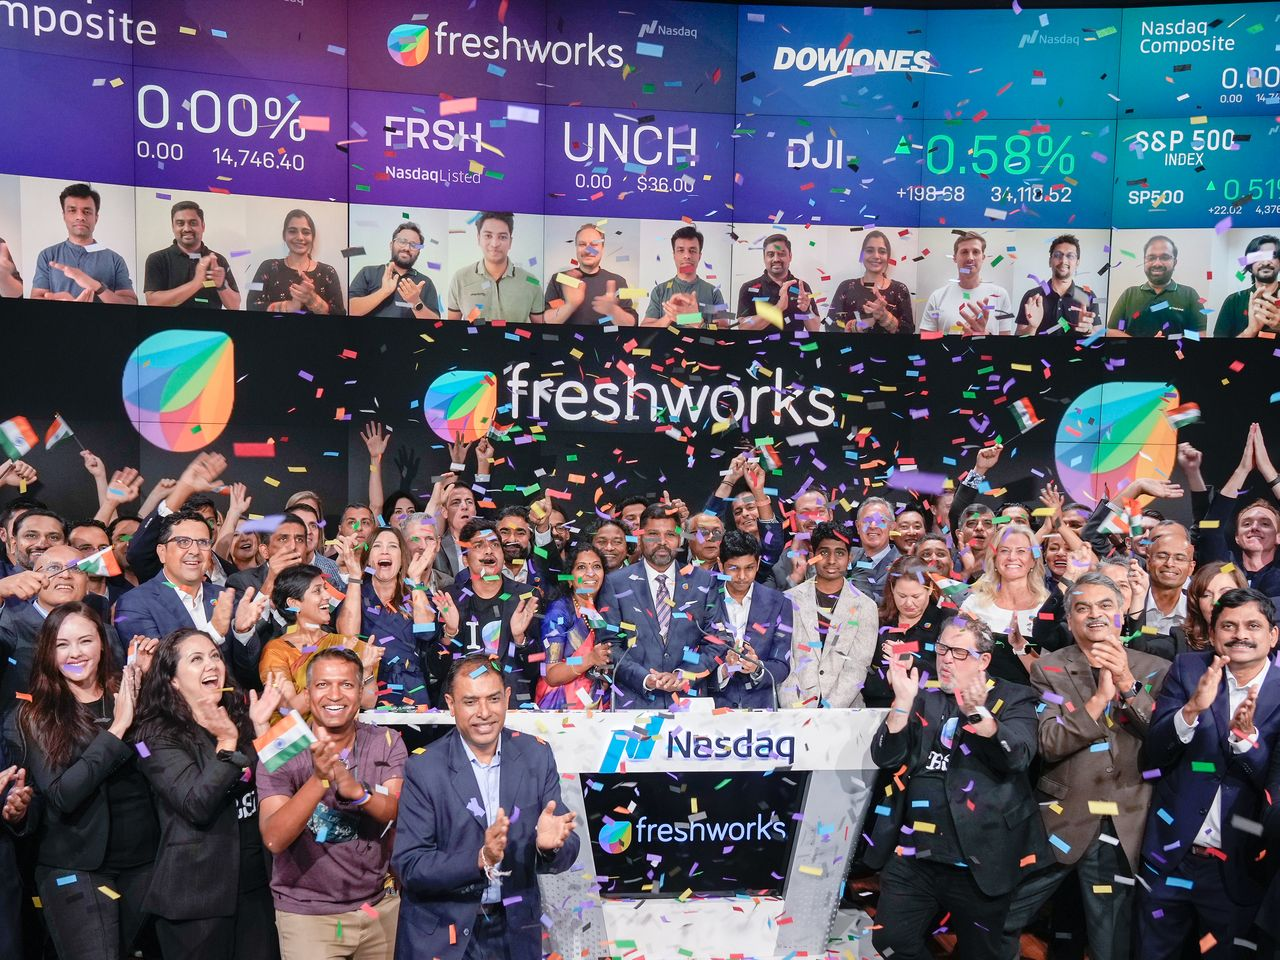 Freshworks stock jumps 20 after IPO raises more than $20 billion ...